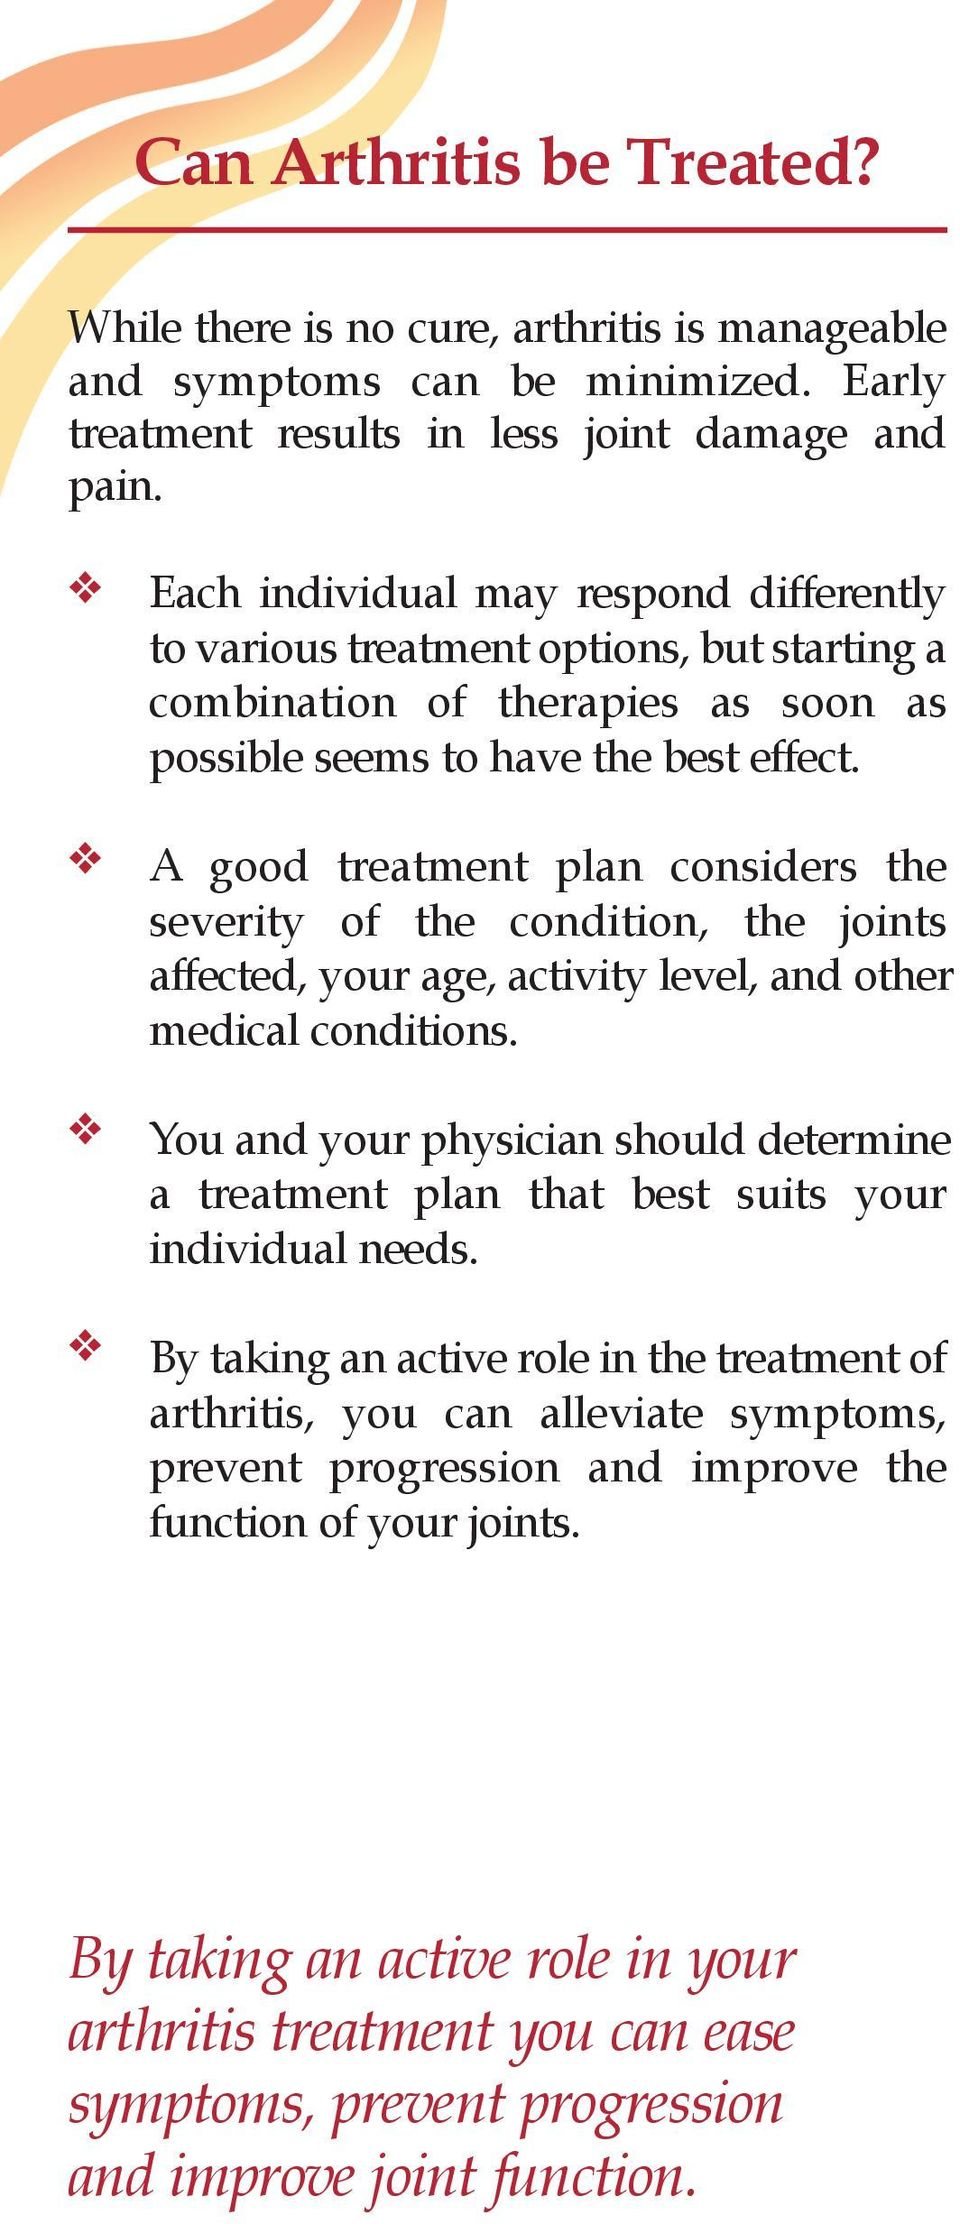 A good treatment plan considers the severity of the condition, the joints affected, your age, activity level, and other medical conditions.